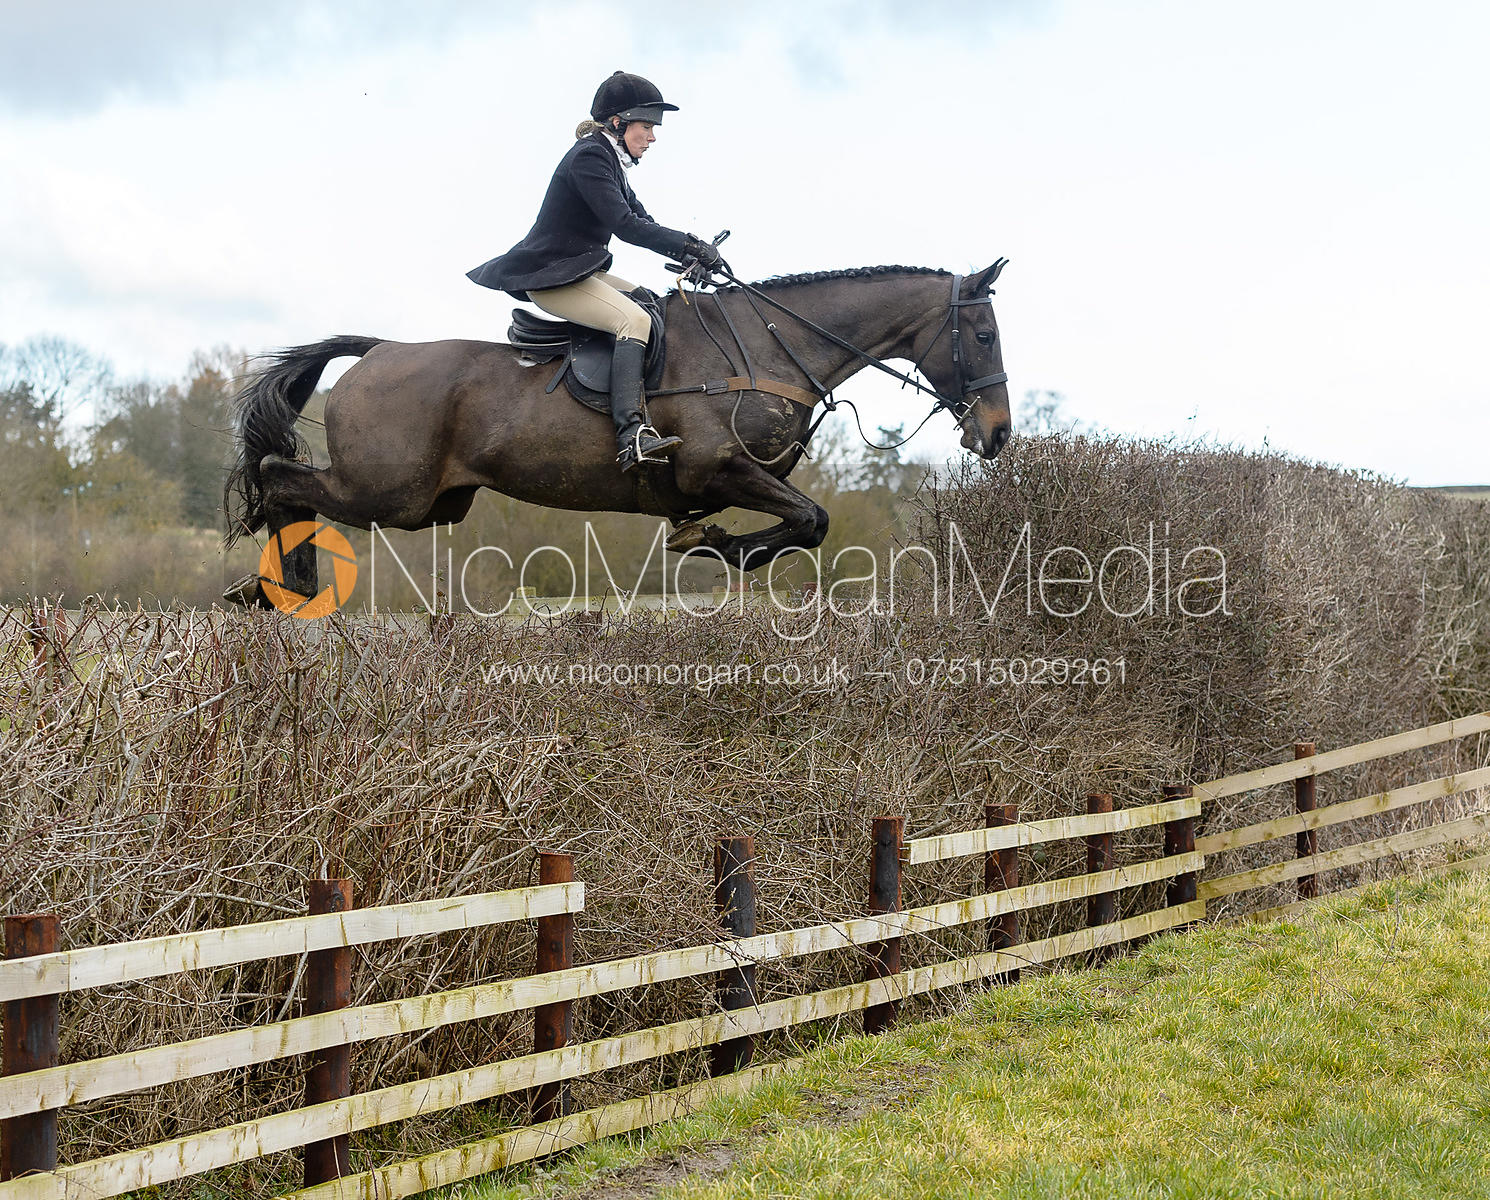 HB jumping a fence at Burrough House